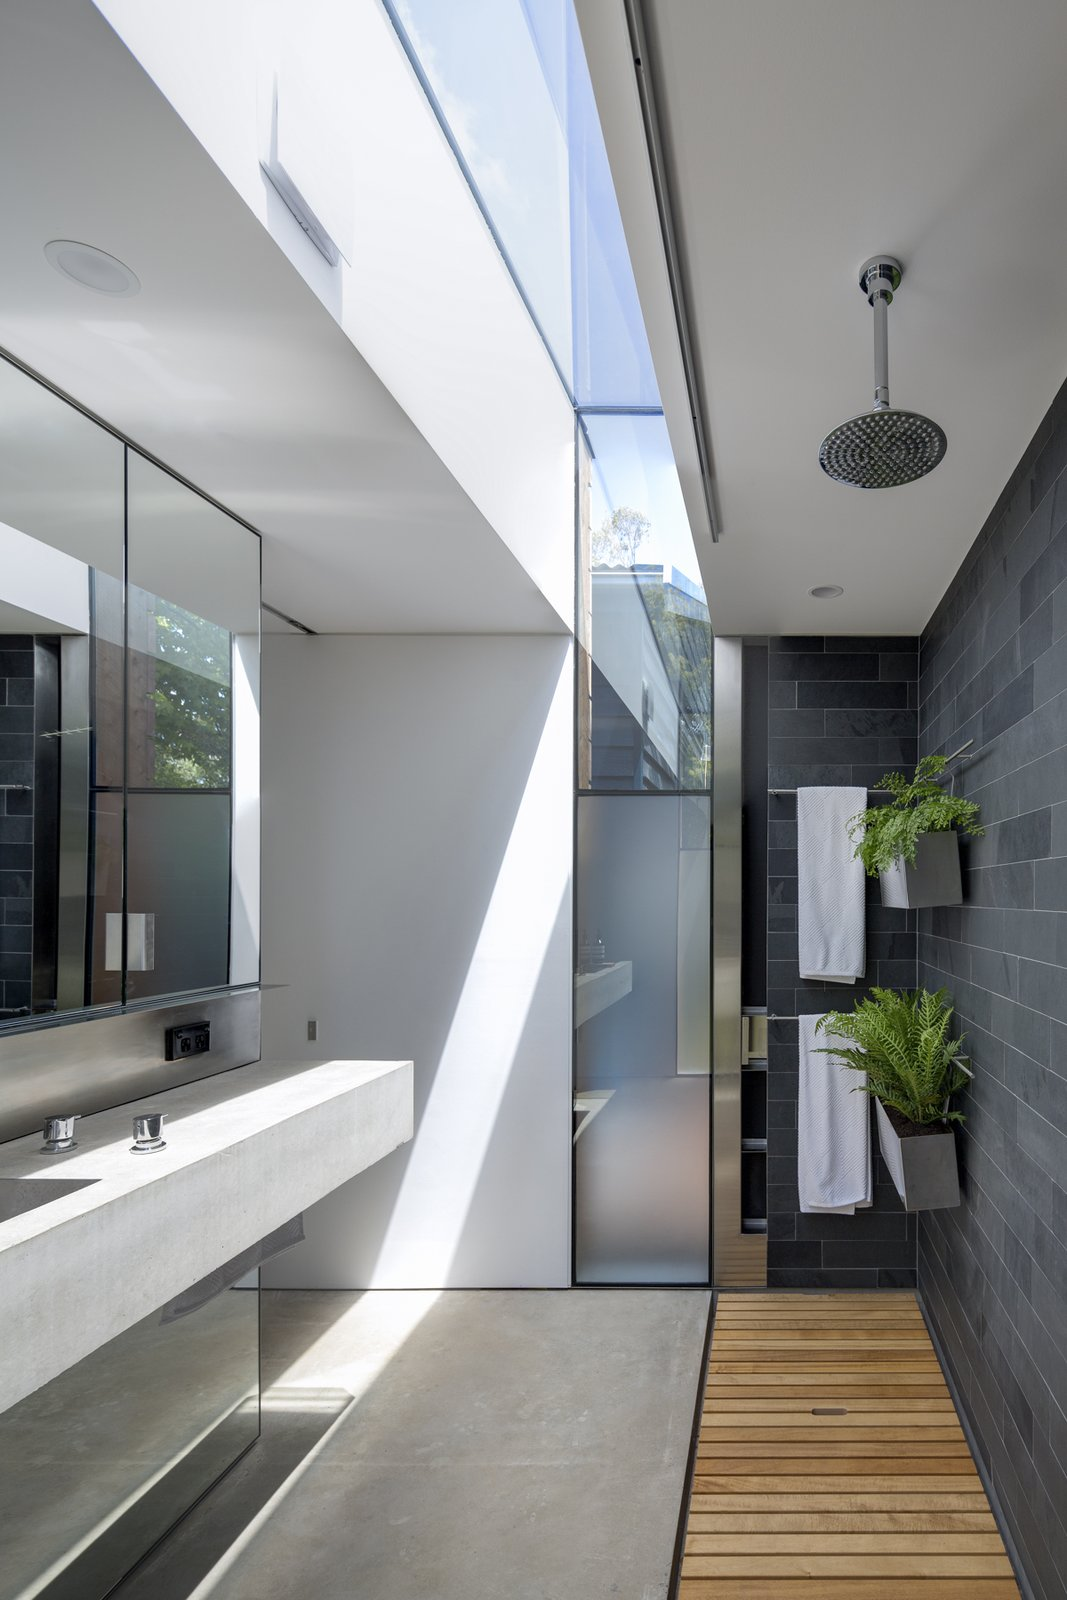 Bath, Concrete, Concrete, Open, Ceiling, Stone Tile, Metal, Light Hardwood, and Metal Bathroom material palette of concrete, Australian white beech, slate, stainless steel, and glass illuminated from above.  Best Bath Ceiling Concrete Photos from Kihilla